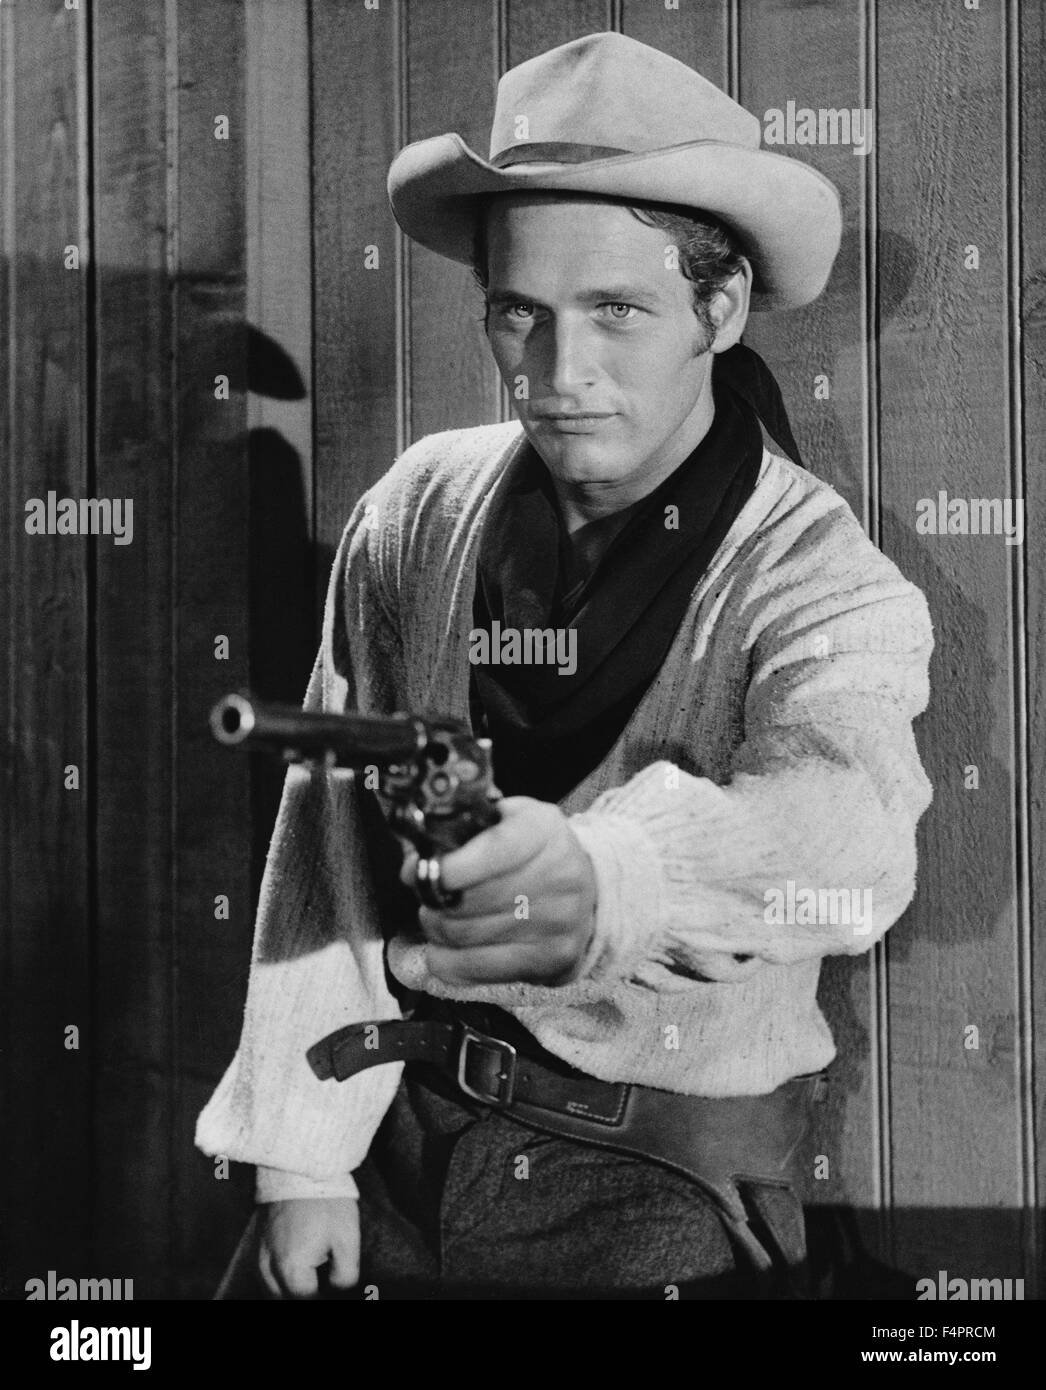 Paul Newman / The Left Handed Gun / 1958 directed by Arthur Penn  [Harroll Productions / Warner Bro] - Stock Image